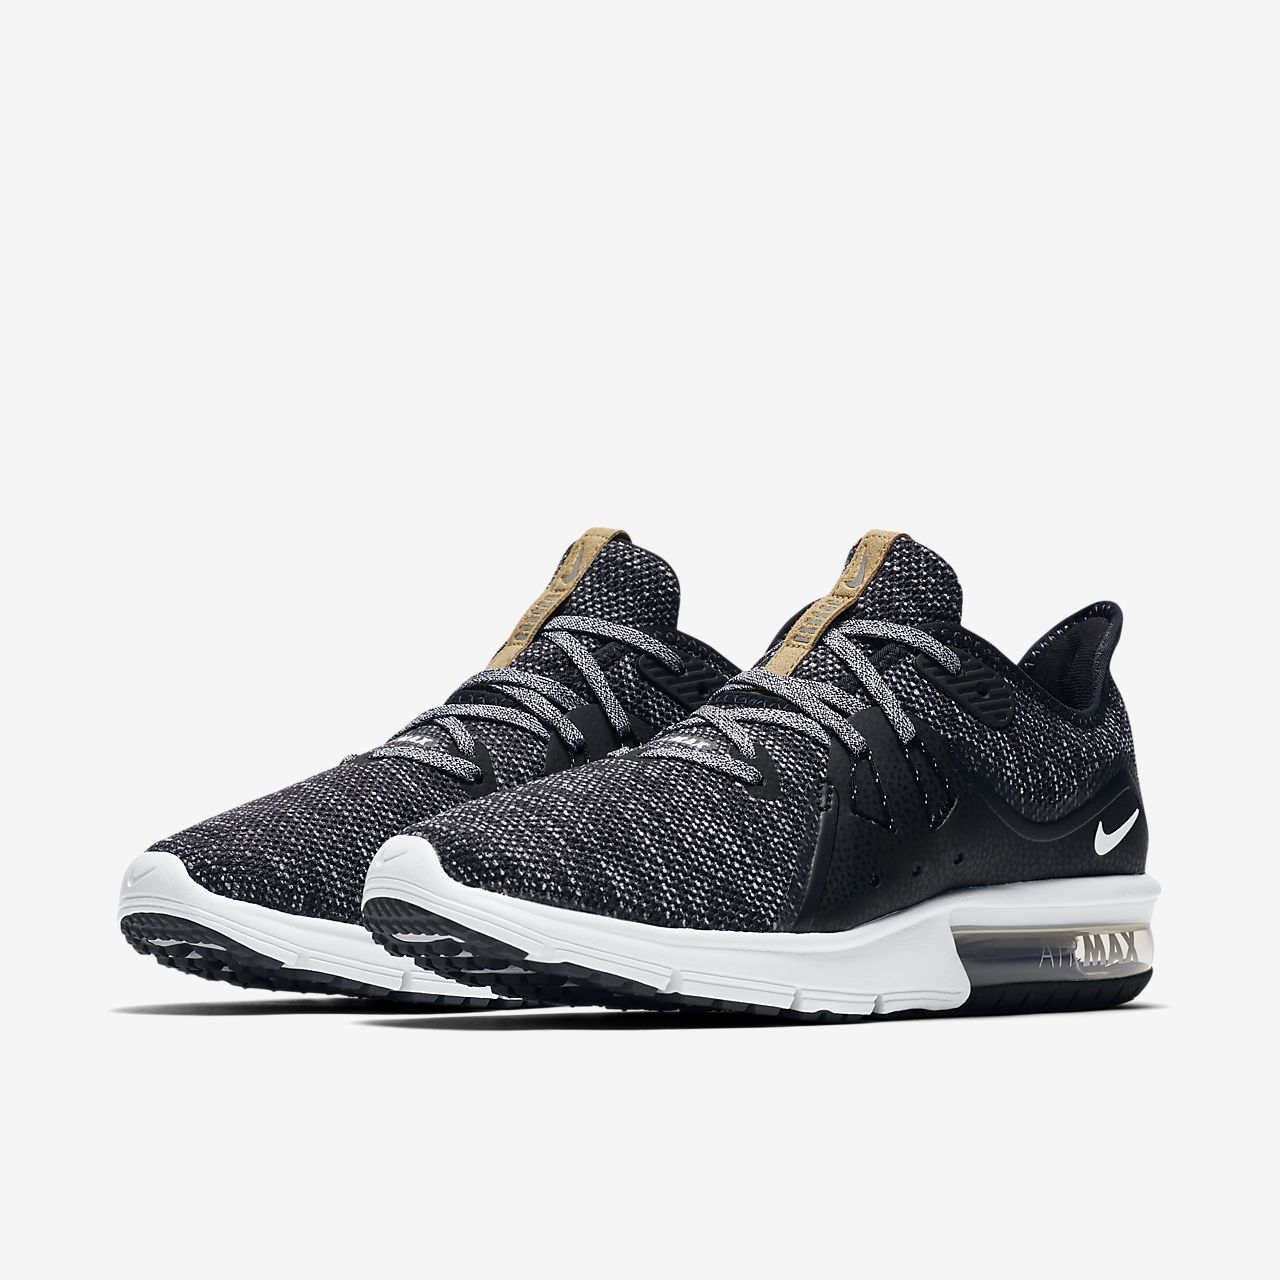 21daace31fc Nike Air Max Sequent 3 Women's Shoe. Nike.com AU